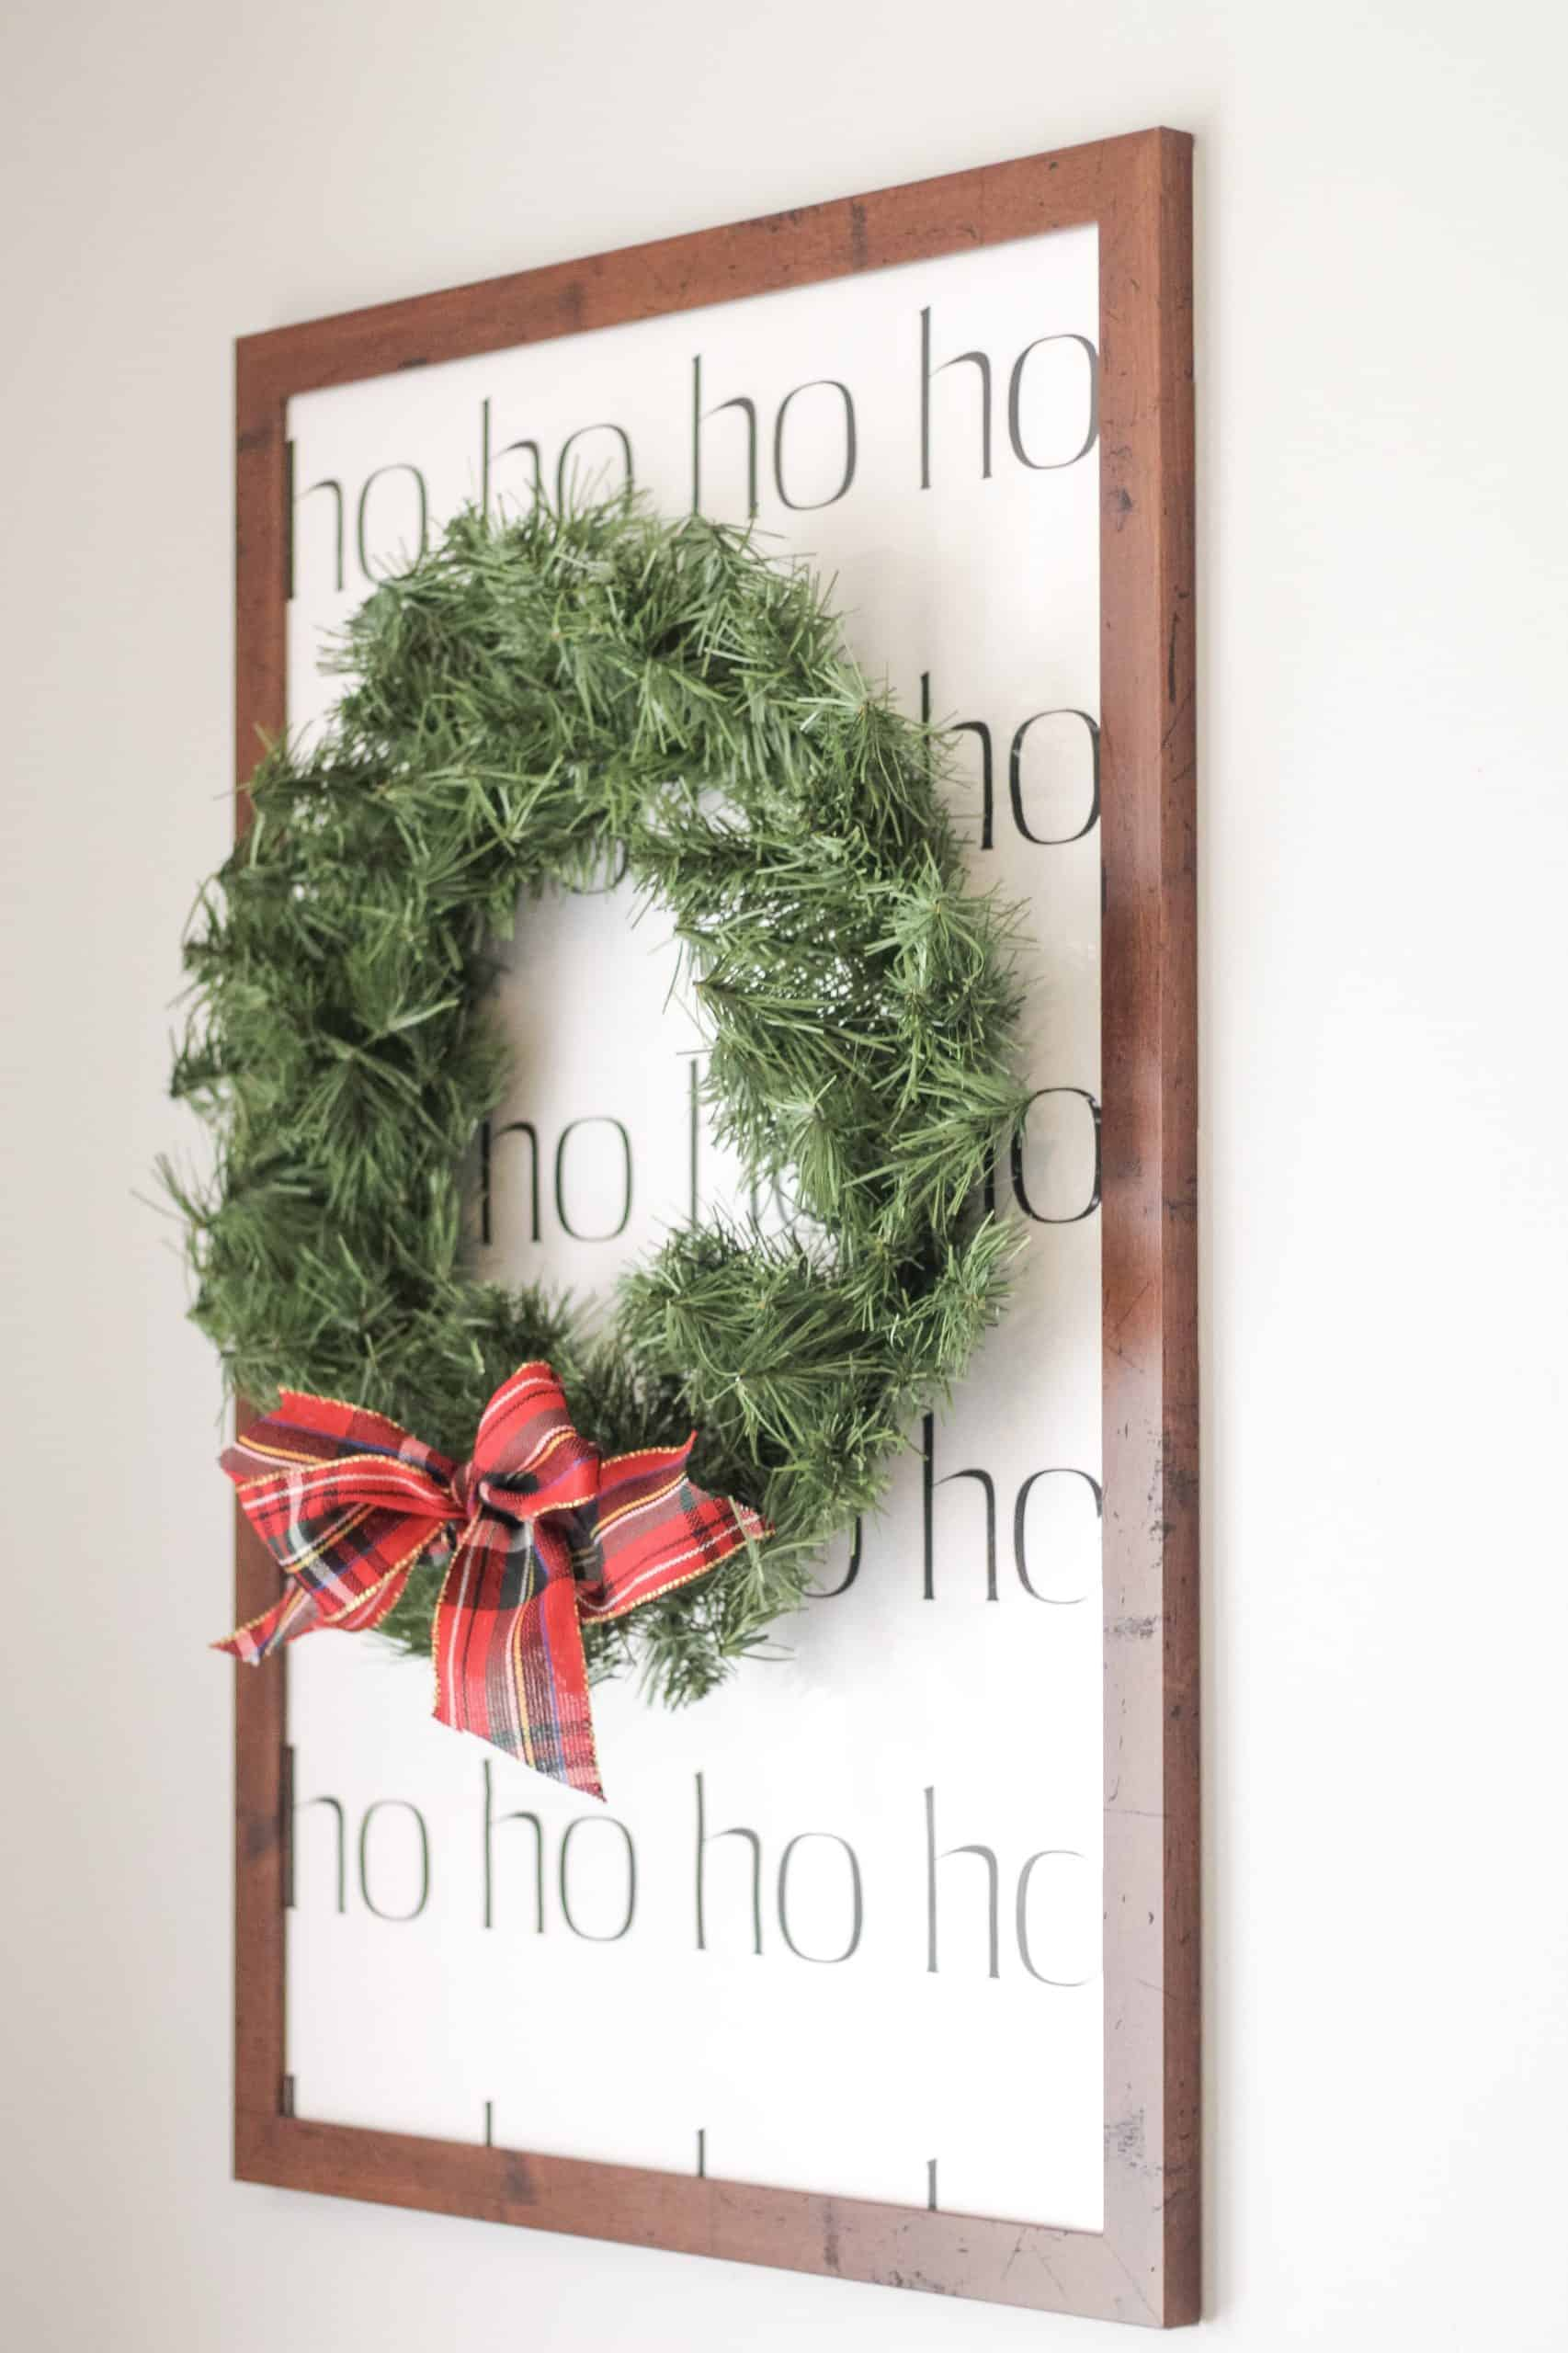 Framed HOHOHO Print with wreath